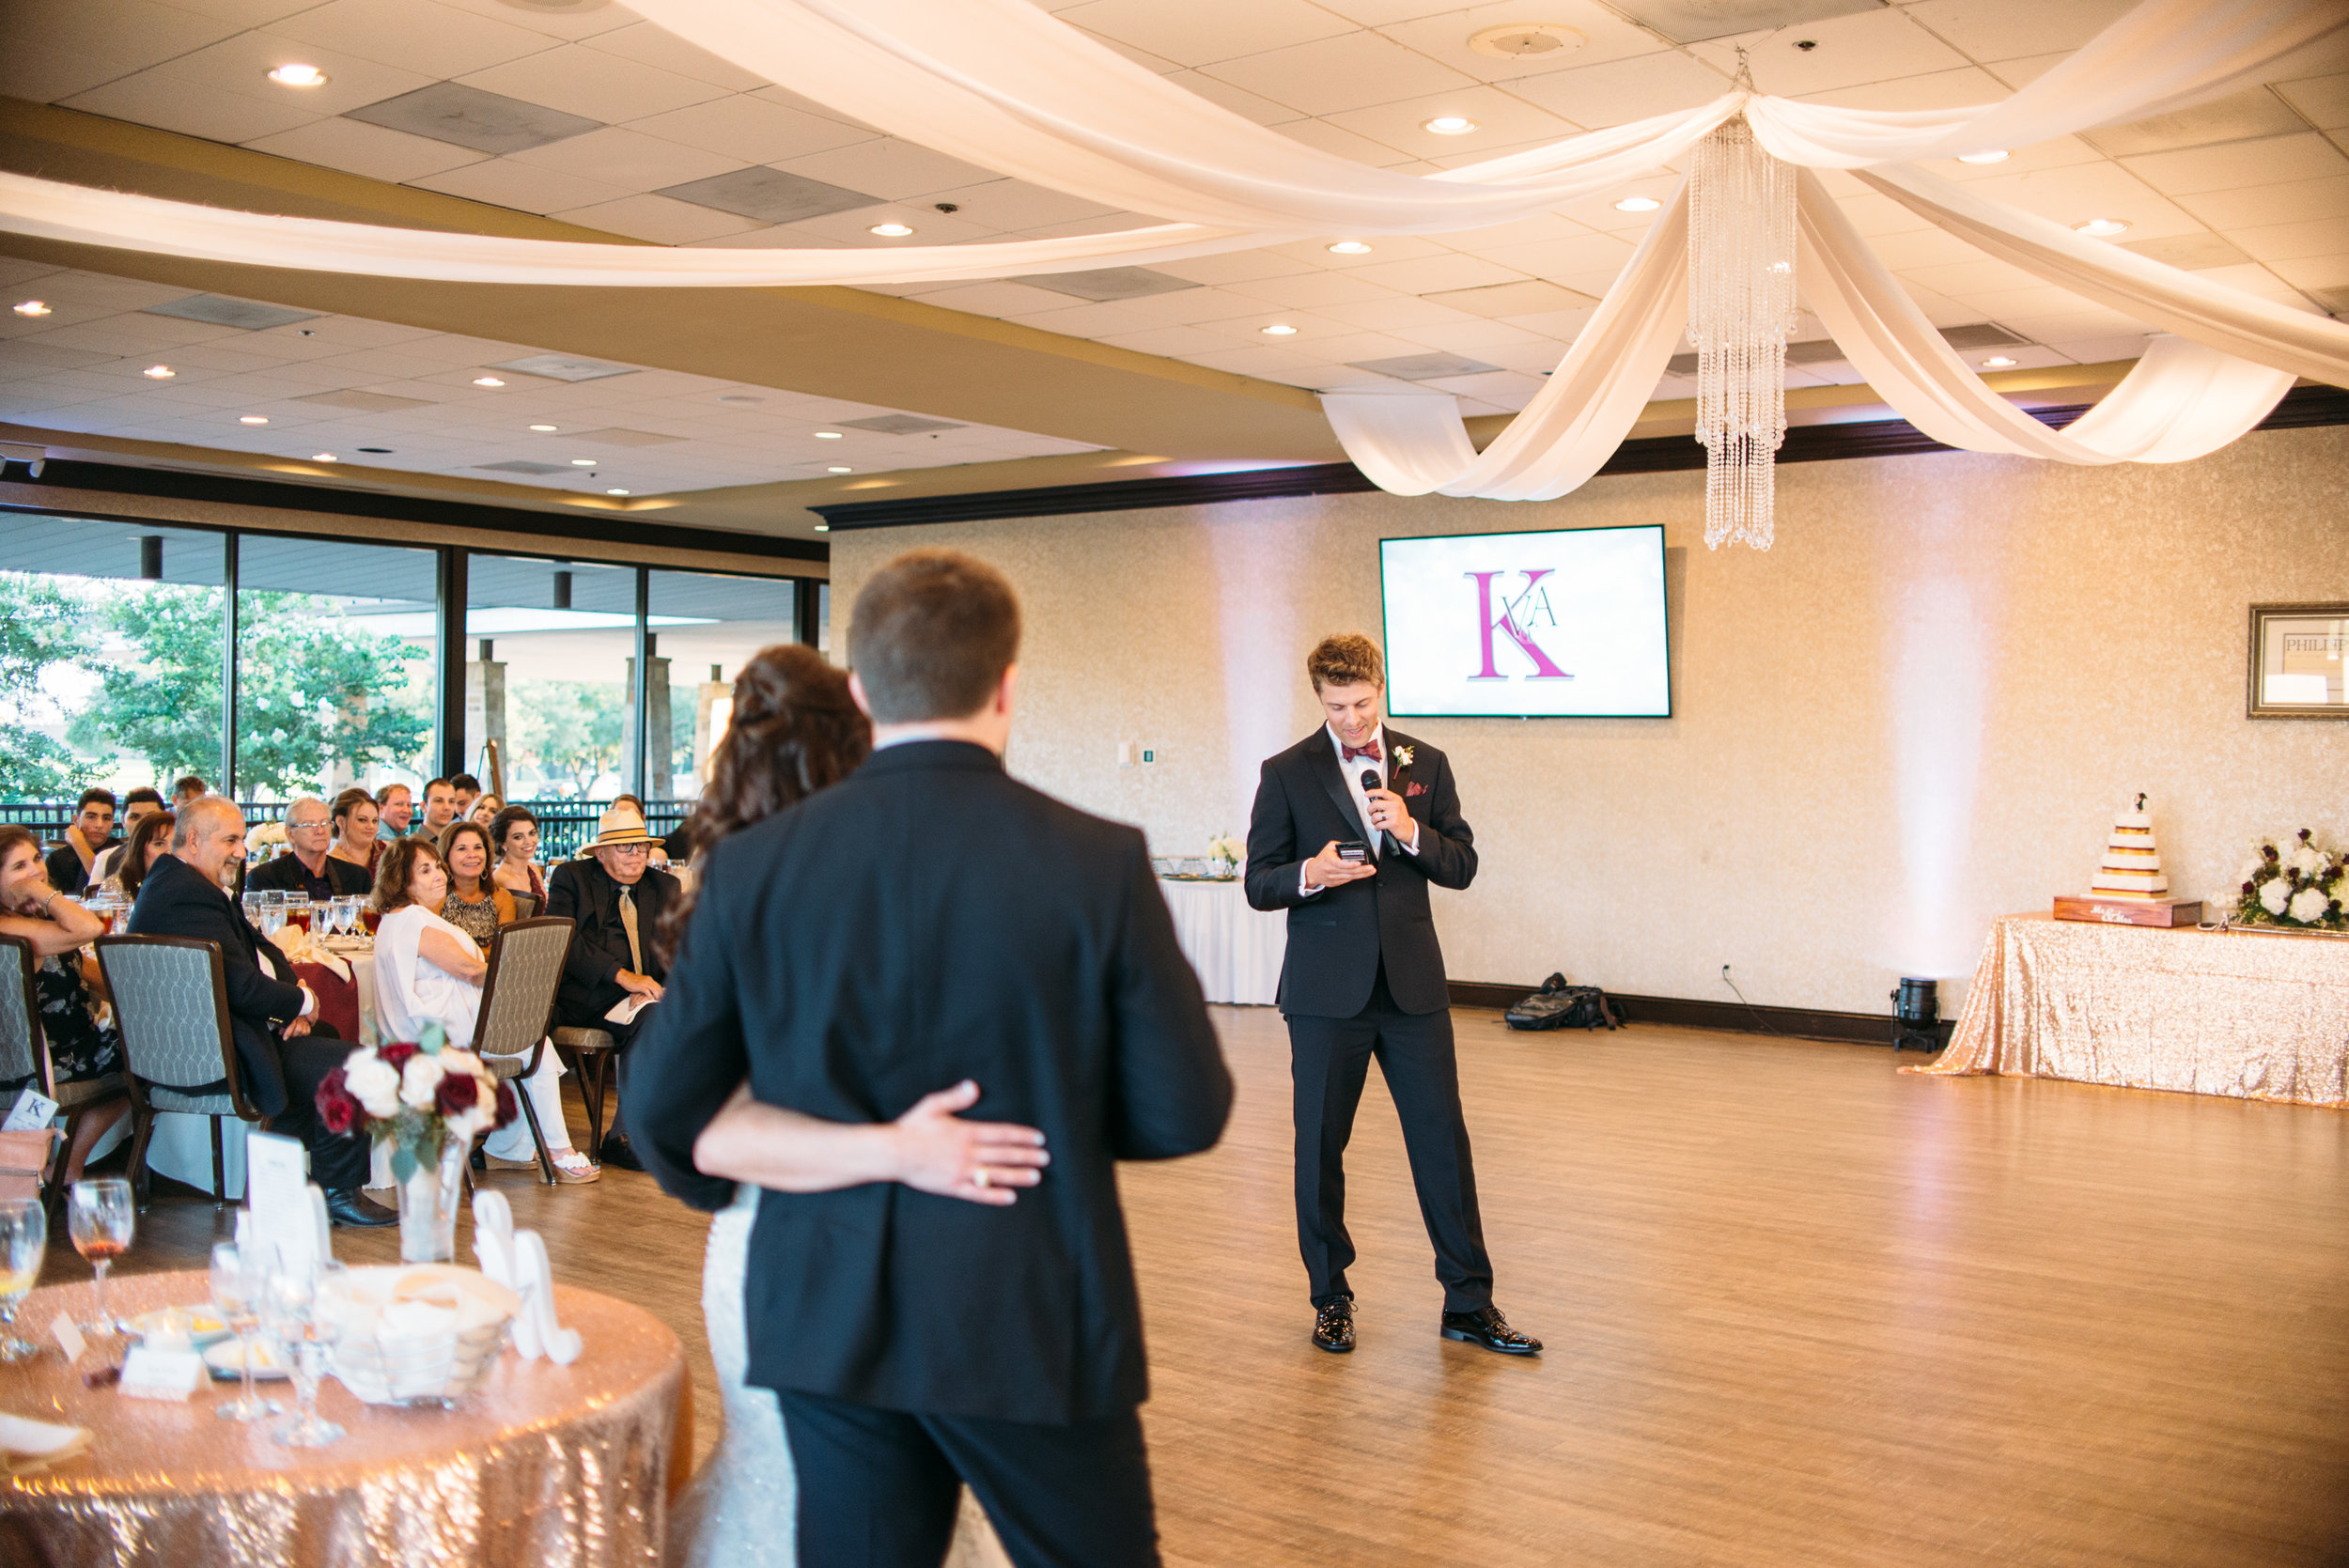 PhillipsEventCenter-AggieWedding-CollegeStationPhotographer_44.jpg